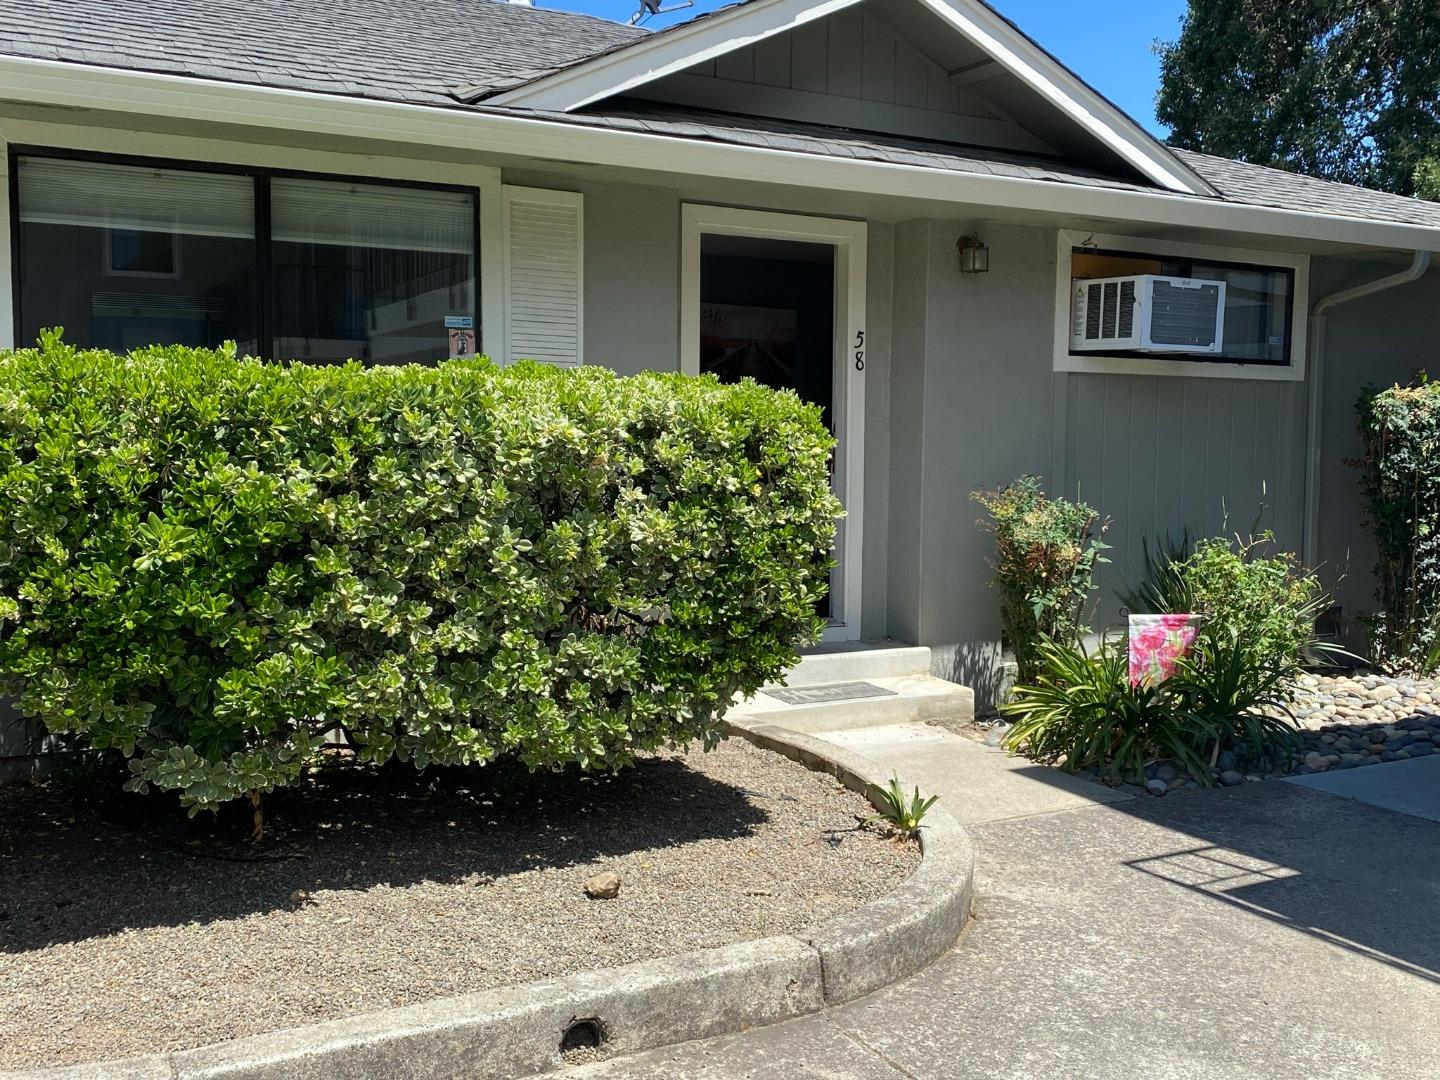 Phenomenal location in the heart of Downtown Morgan Hill. Beautiful inside unit with tasteful updates. Kitchen, bathroom, molding and built ins all are done. Gorgeous hardwood floors, convenient indoor laundry room with wash basin, attached garage, French doors off the living room leading you to a private fenced in backyard with artificial turf for low maintenance living so you can enjoy life style. Walk to the numerous Restaurants, Brewery, Gyms, Shops, Park, Farmers Market & if you are a commuter the train station is 1 block away! This is an amazing opportunity to own & not pay rent while being in the center of it all.